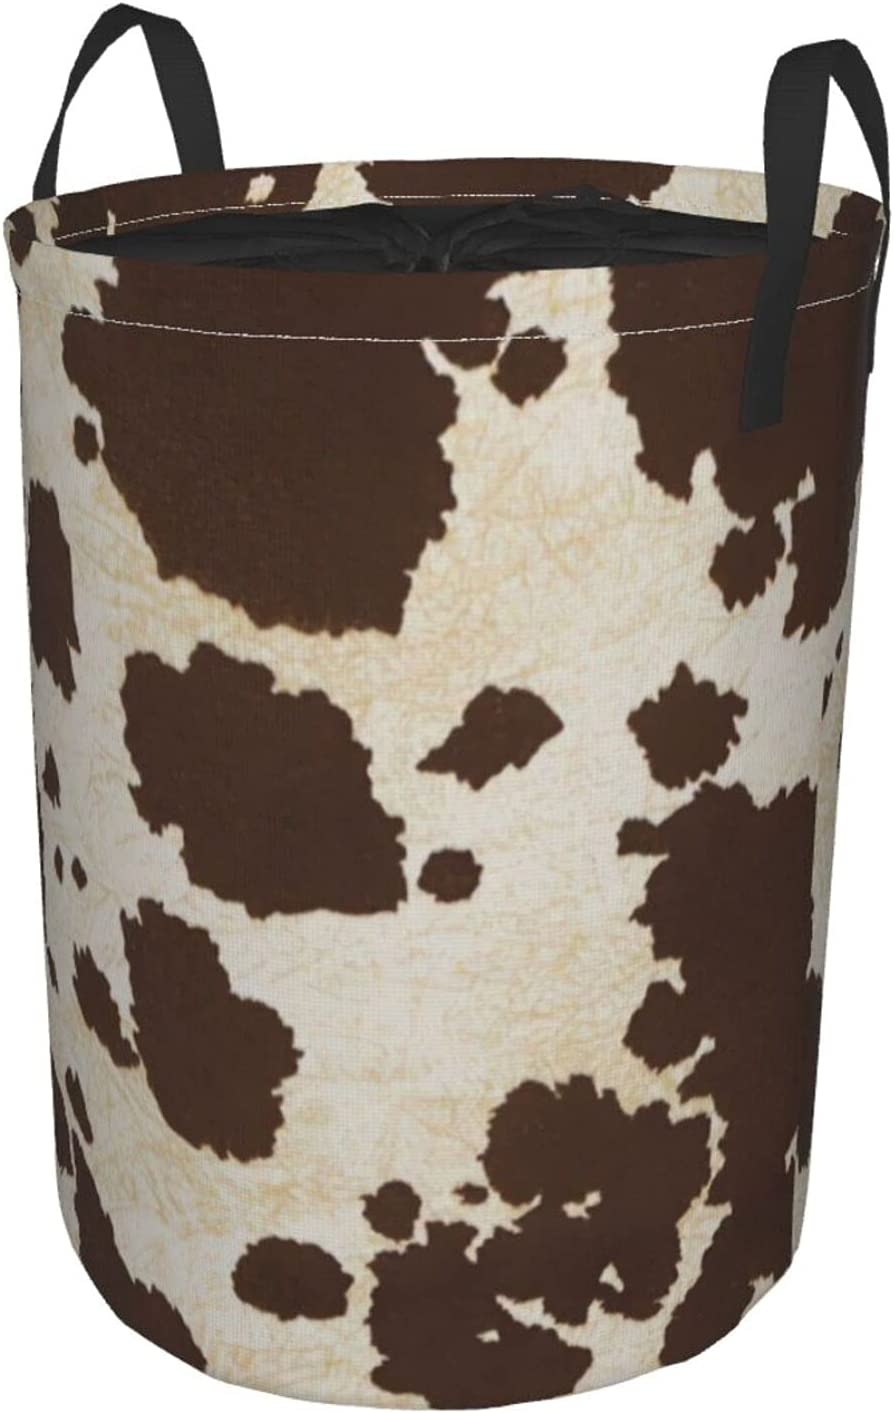 Brown Super Special SALE held Cowhide specialty shop Laundry Hamper with Dirty Clothes Li Handle